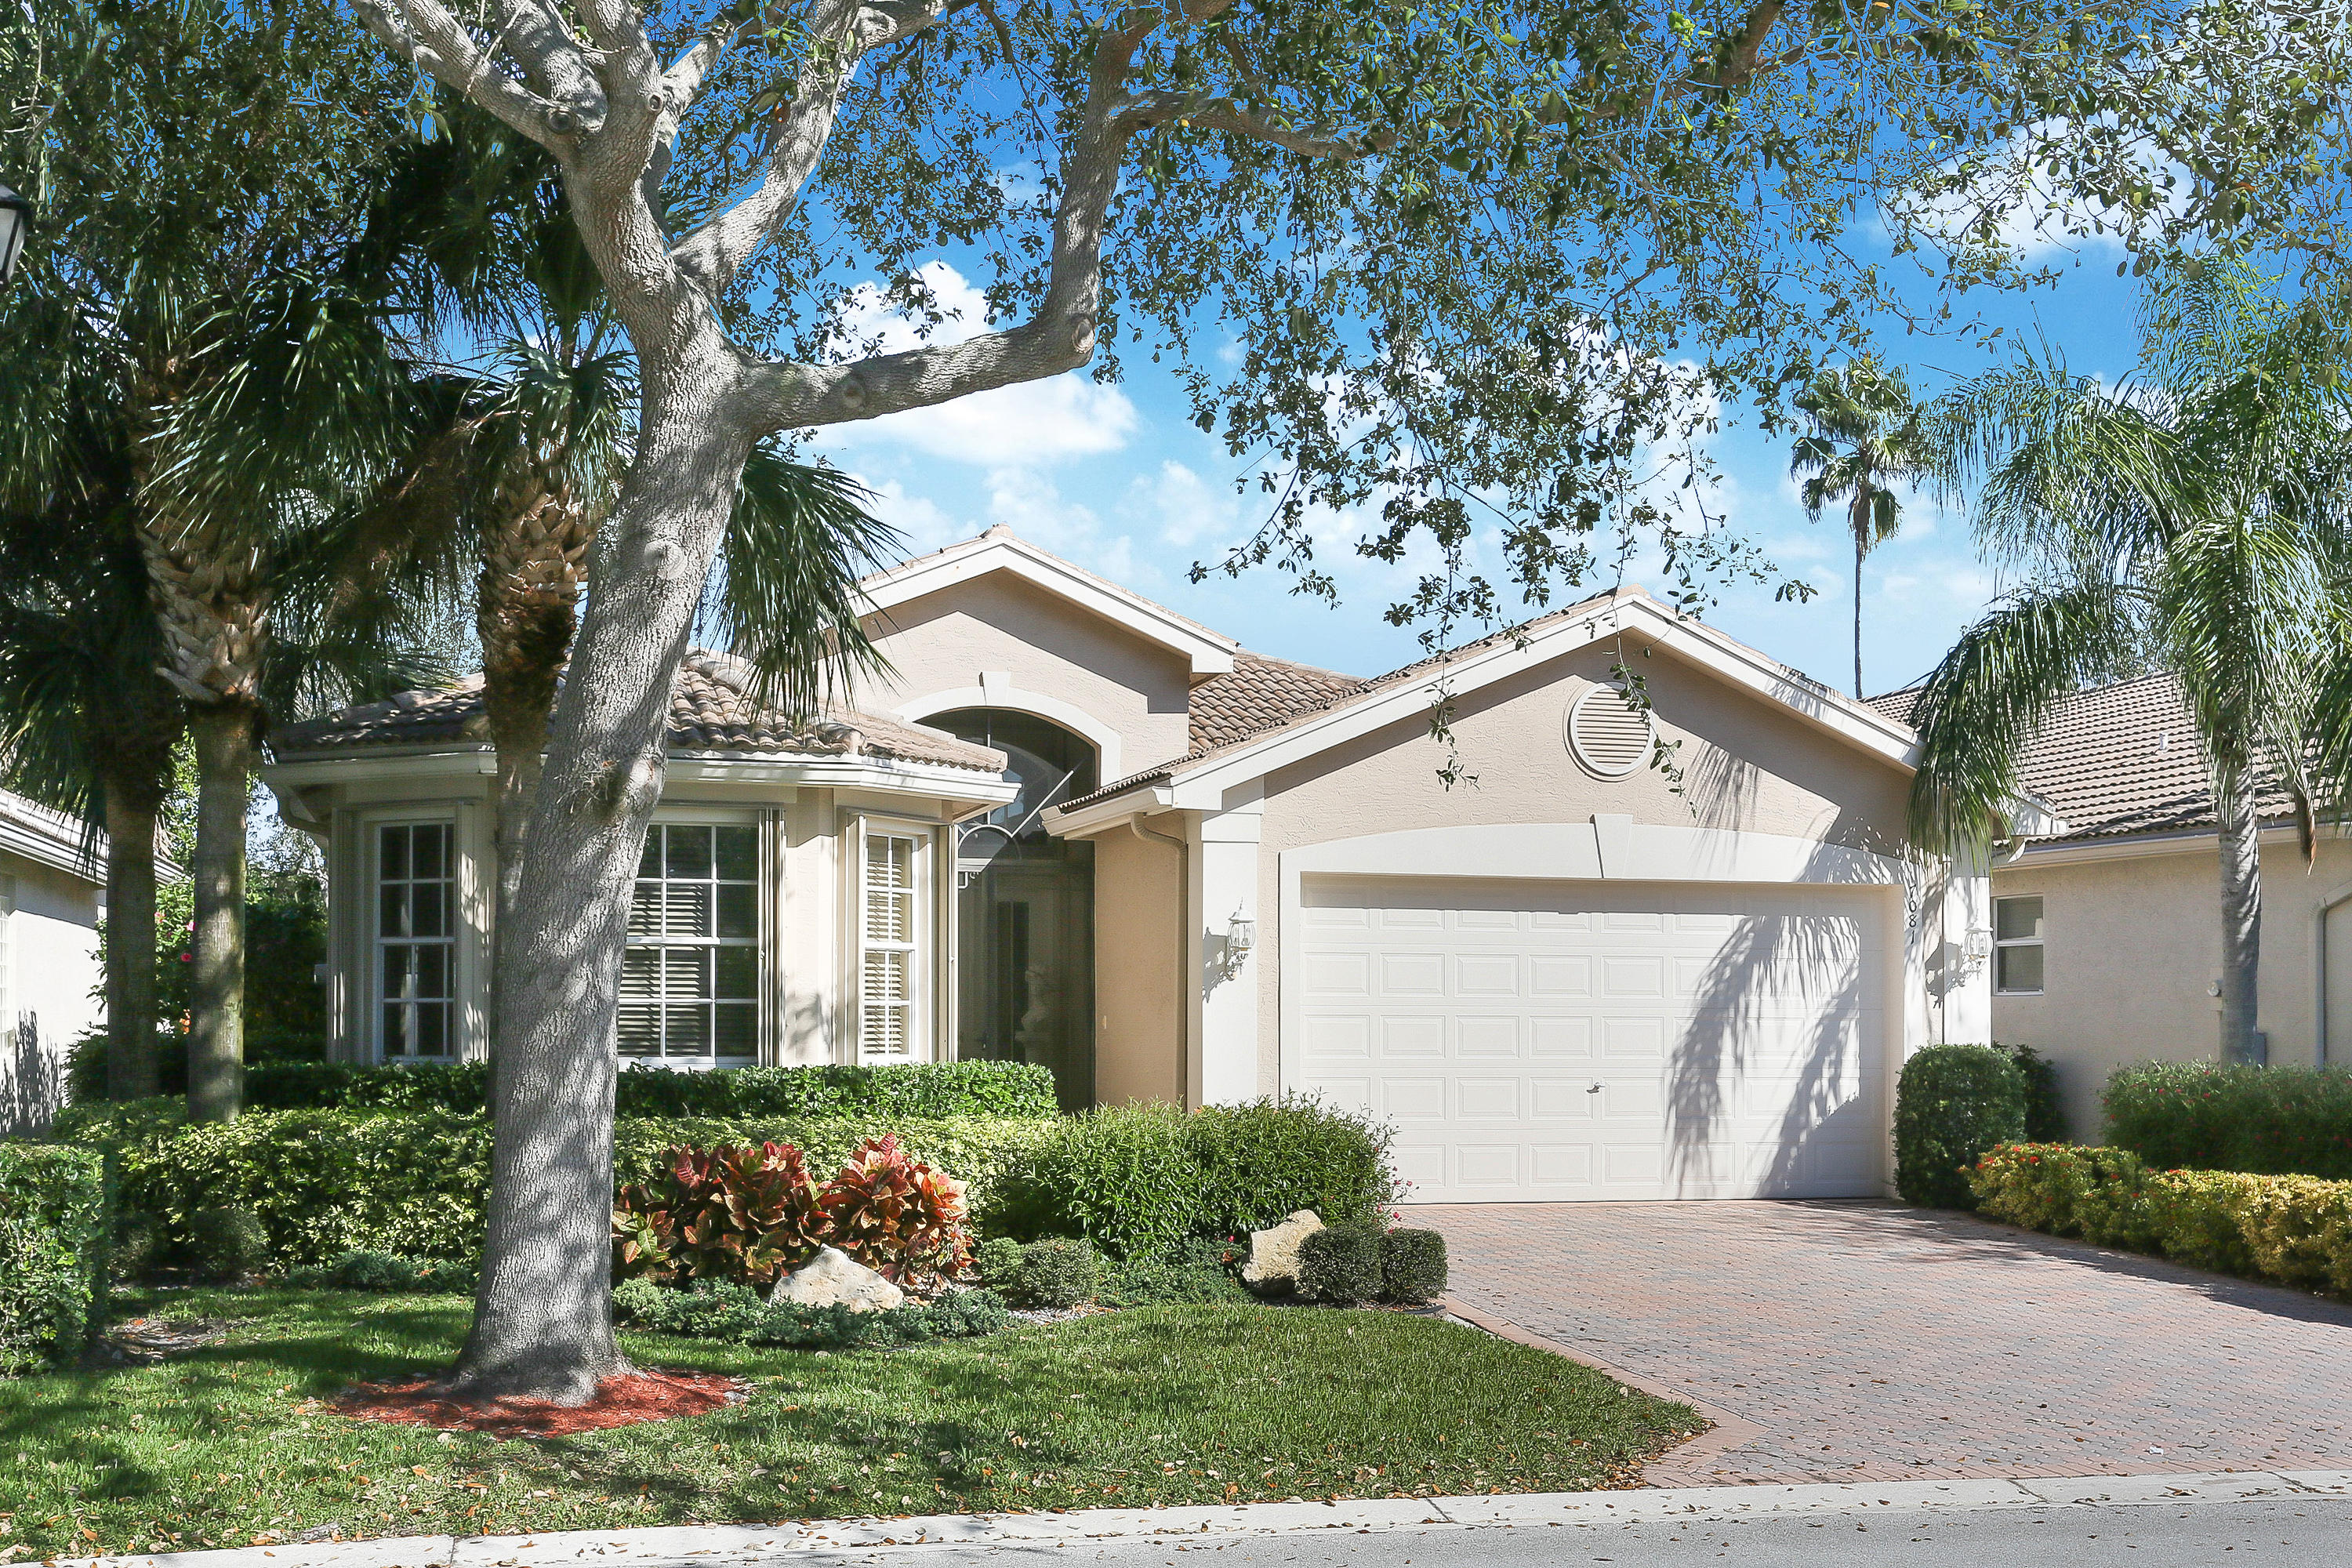 7081 Avila Terrace Way  Delray Beach FL 33446